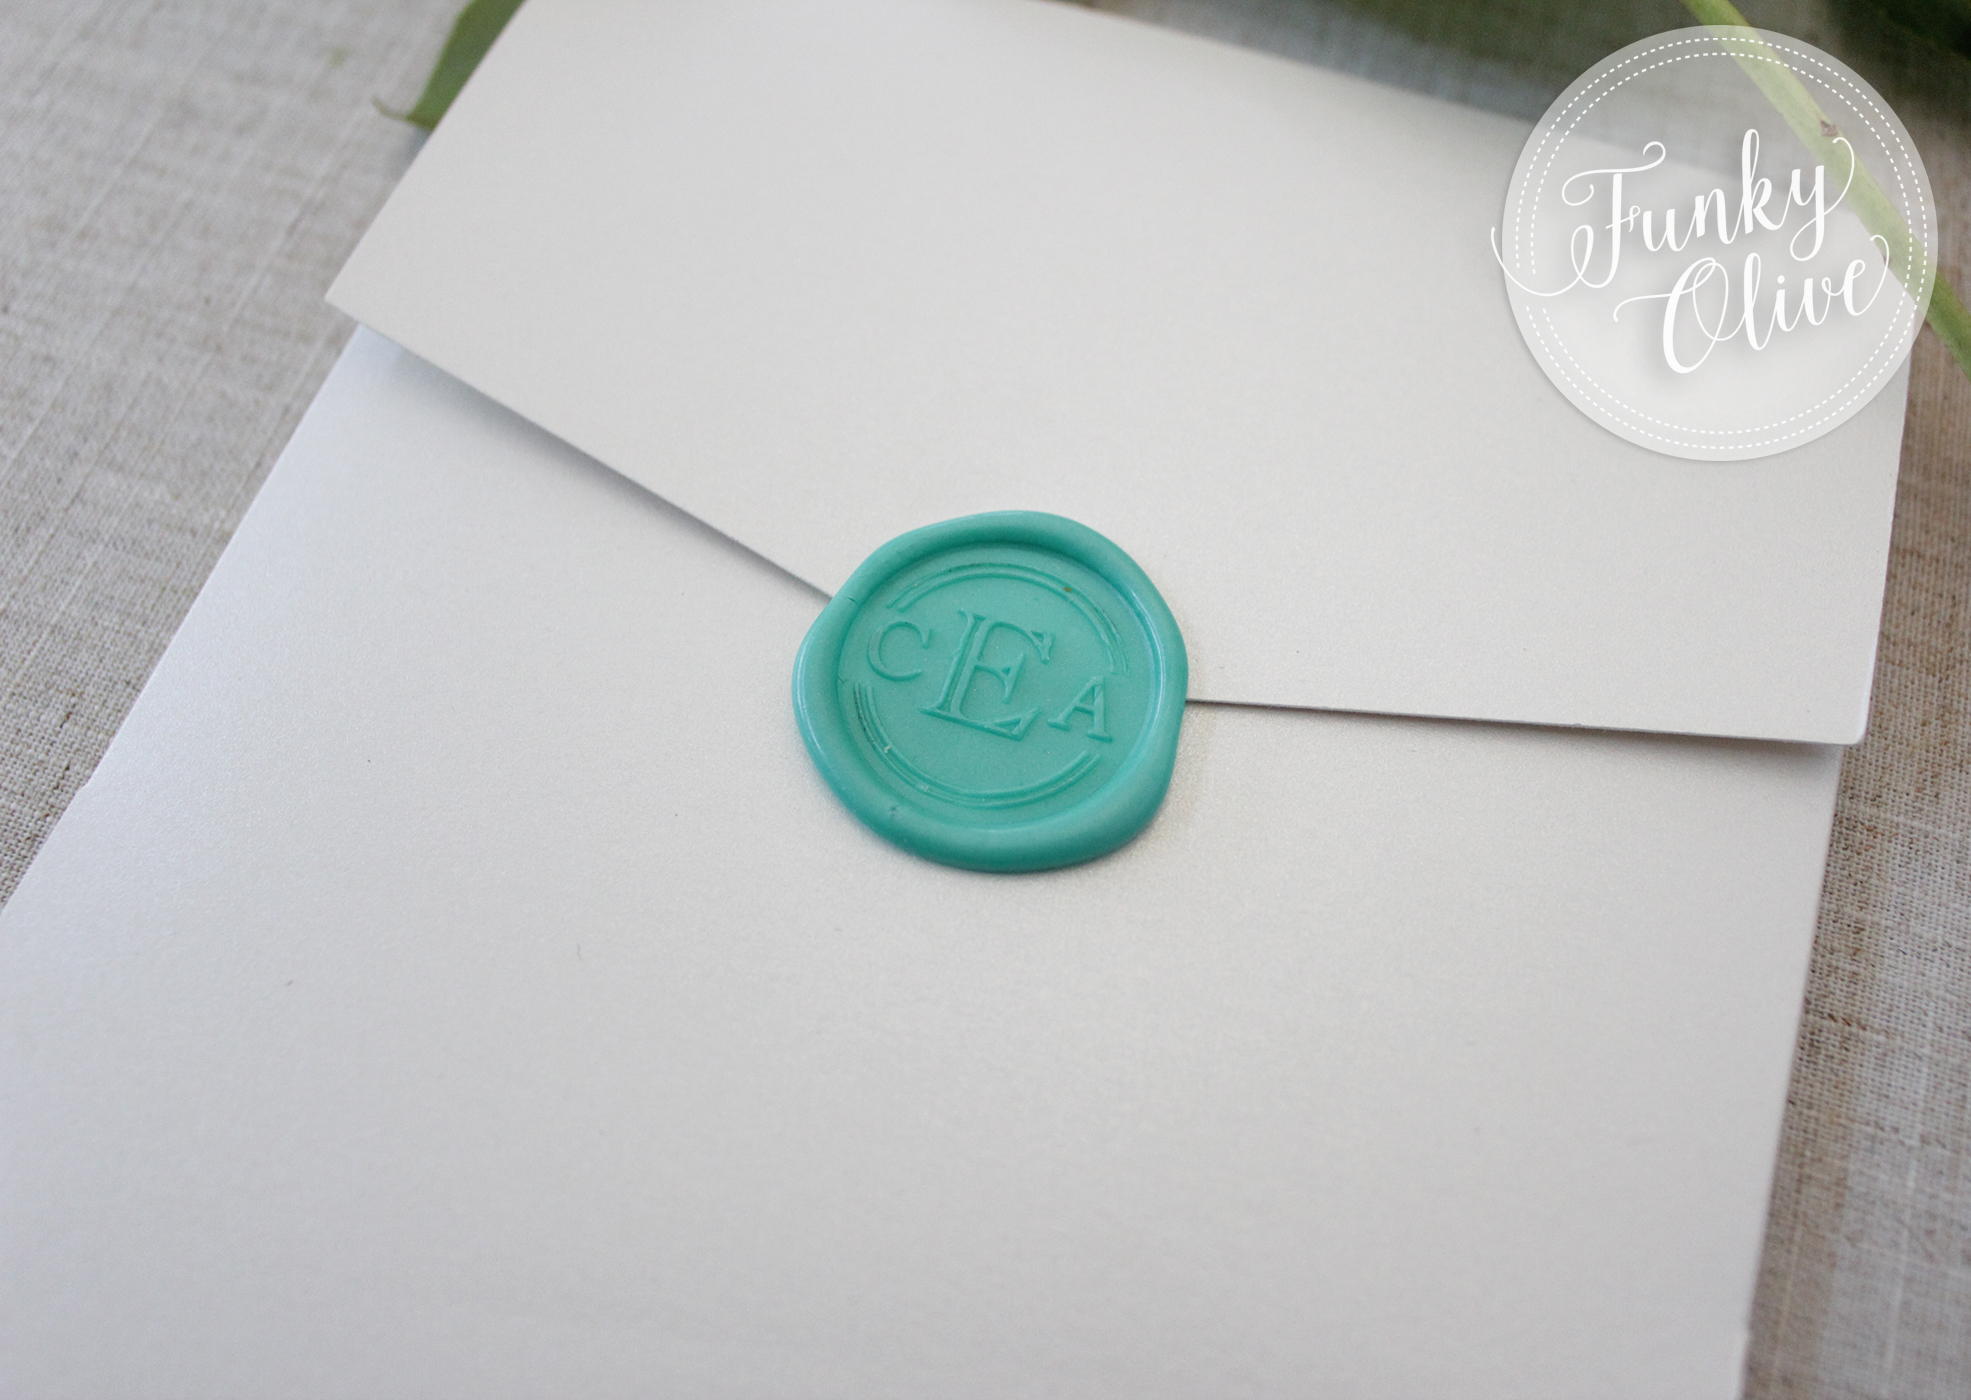 Their custom monogram was used on self-adhesive wax seals, so that the invitations weren't damaged when opened. photo © Funky Olive Invitations + Stationery 2017